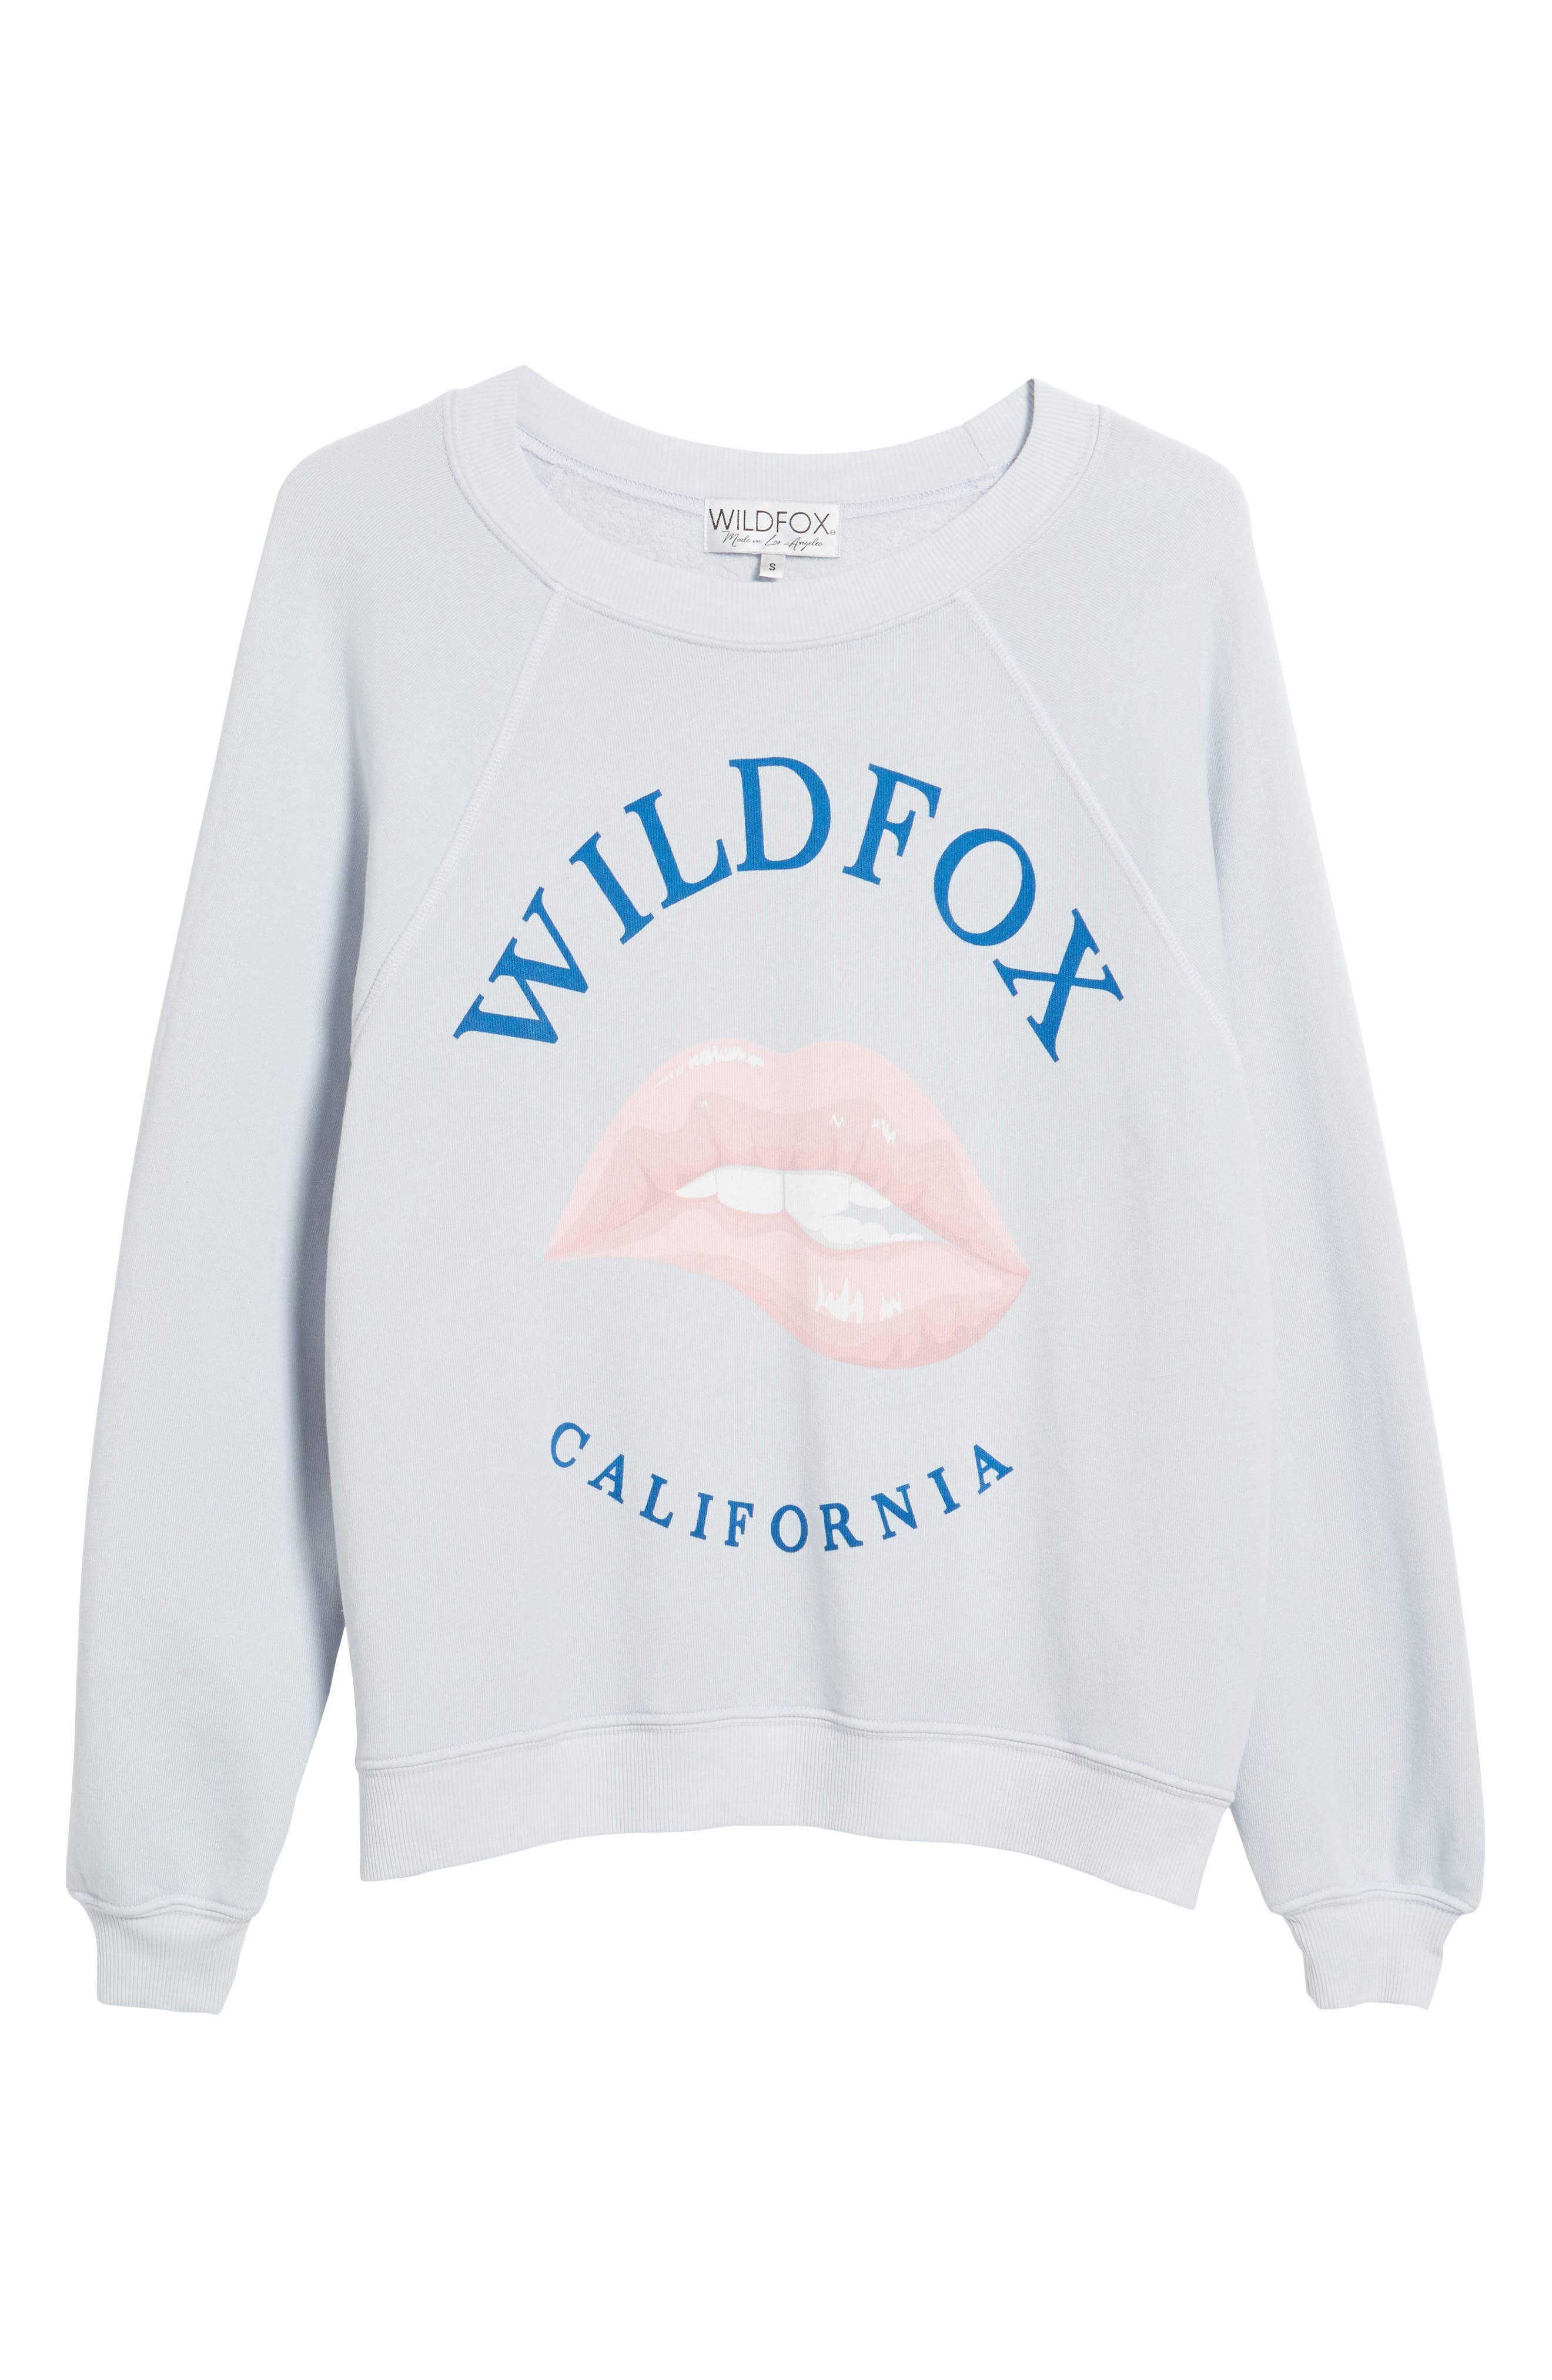 California Sommers Sweatshirt,                             Alternate thumbnail 6, color,                             420